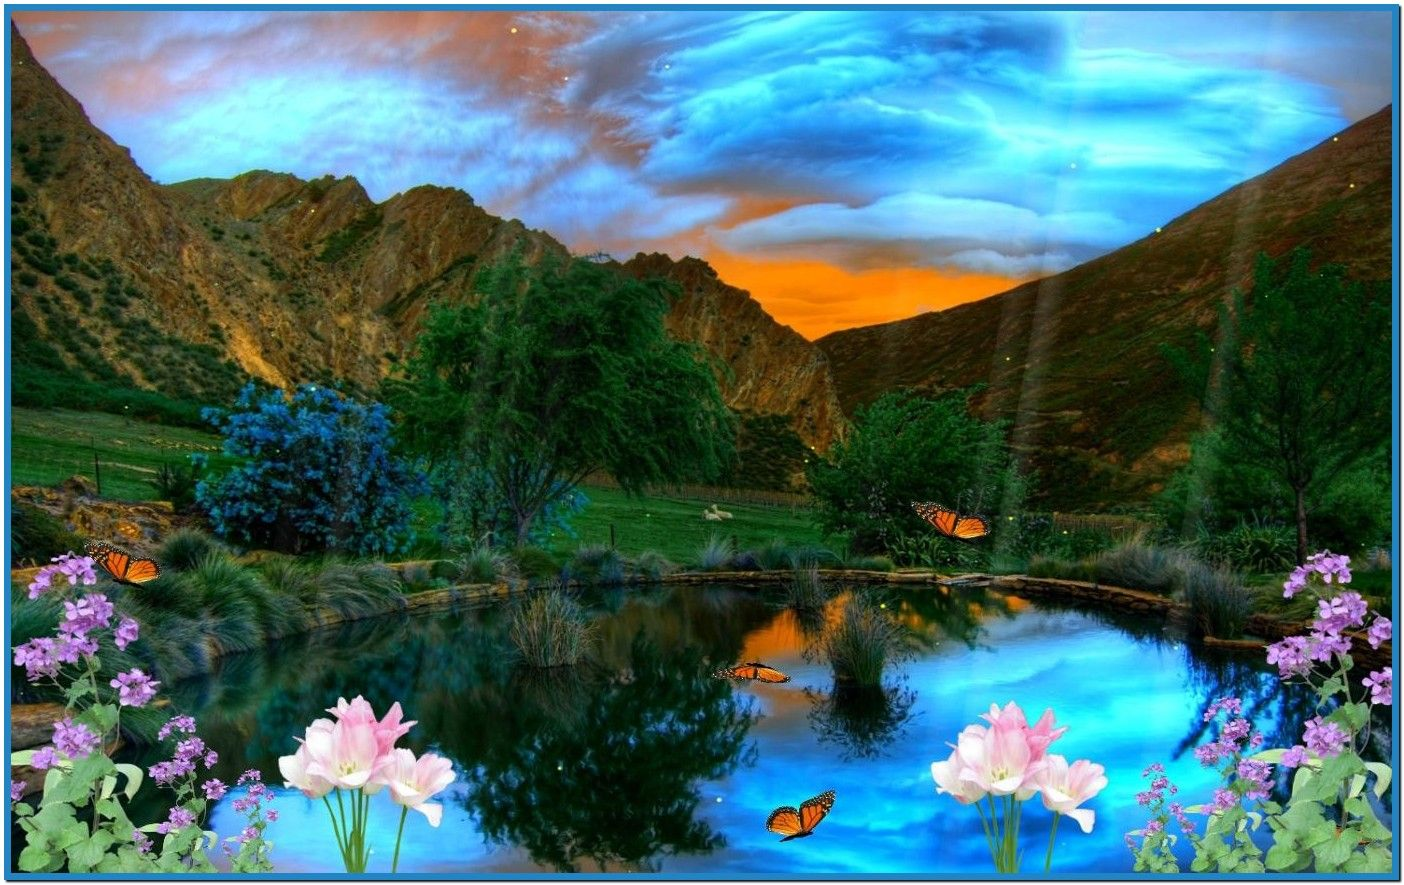 Animated Screensavers Animated Nature Screensavers Windows 7 With Images Lake Photos Beautiful Mountains Mountain Lakes